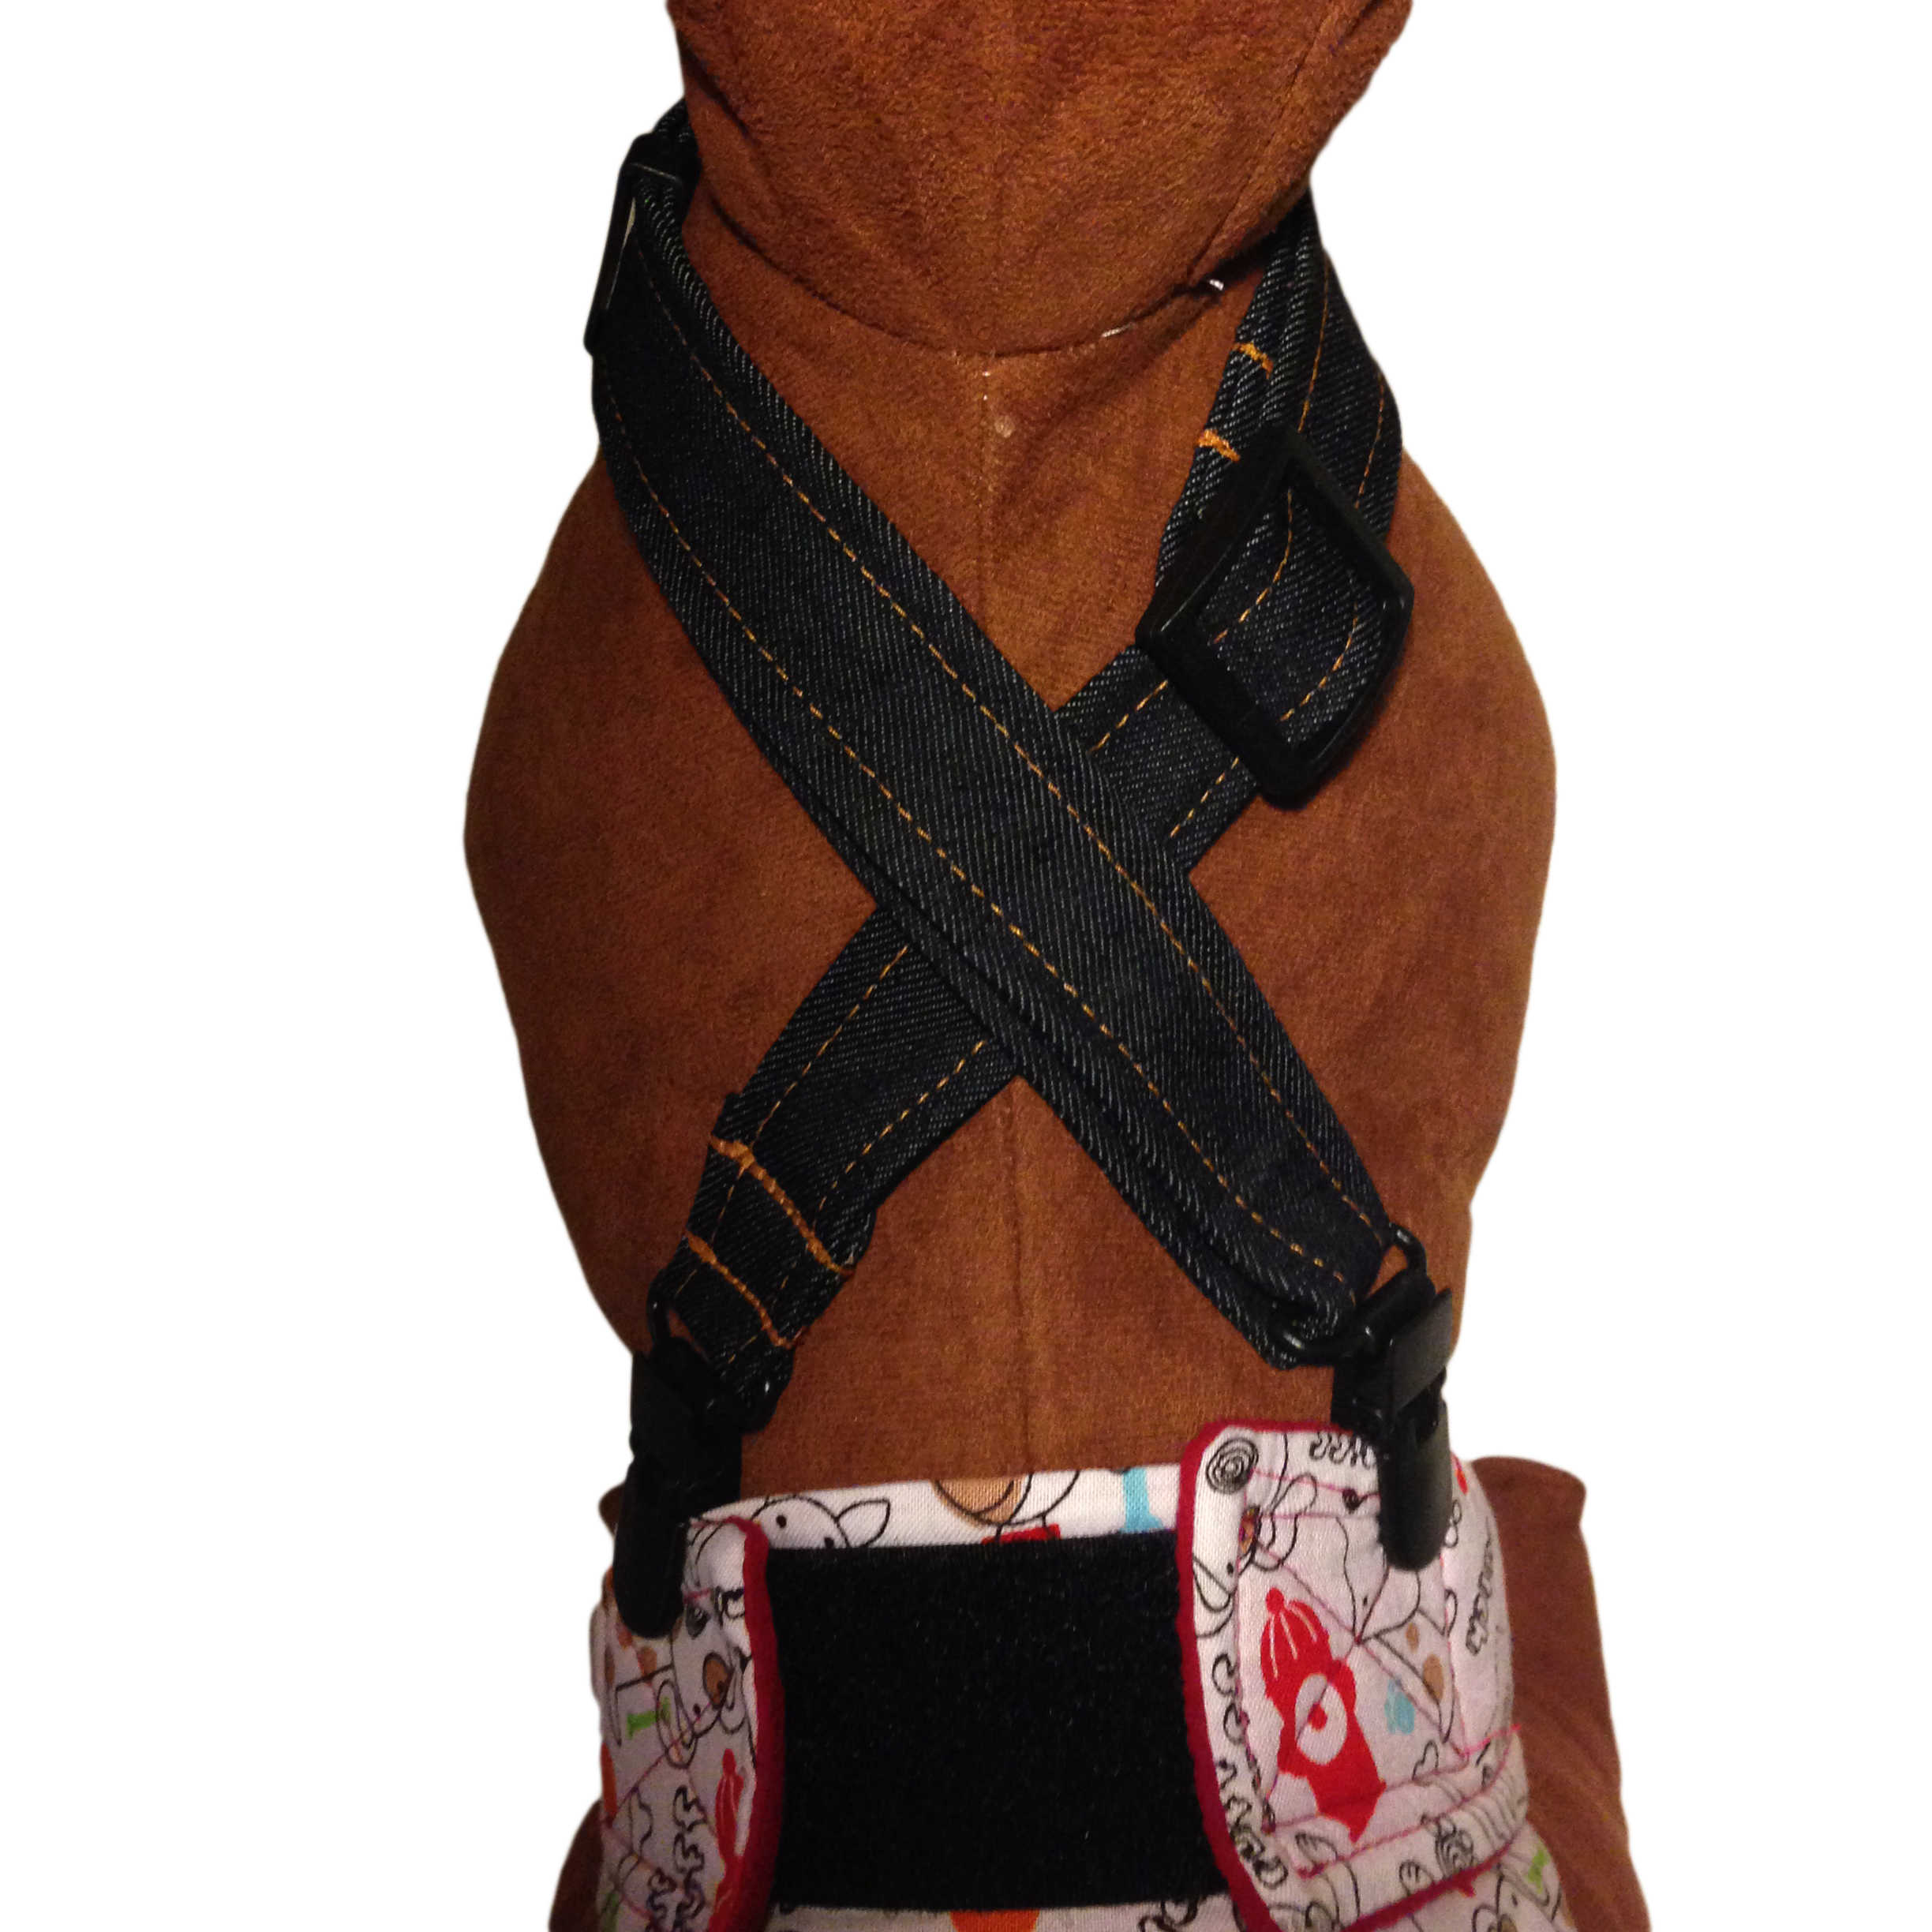 Barkertime Denim Adjustable Suspender To Keep Dog Diapers On